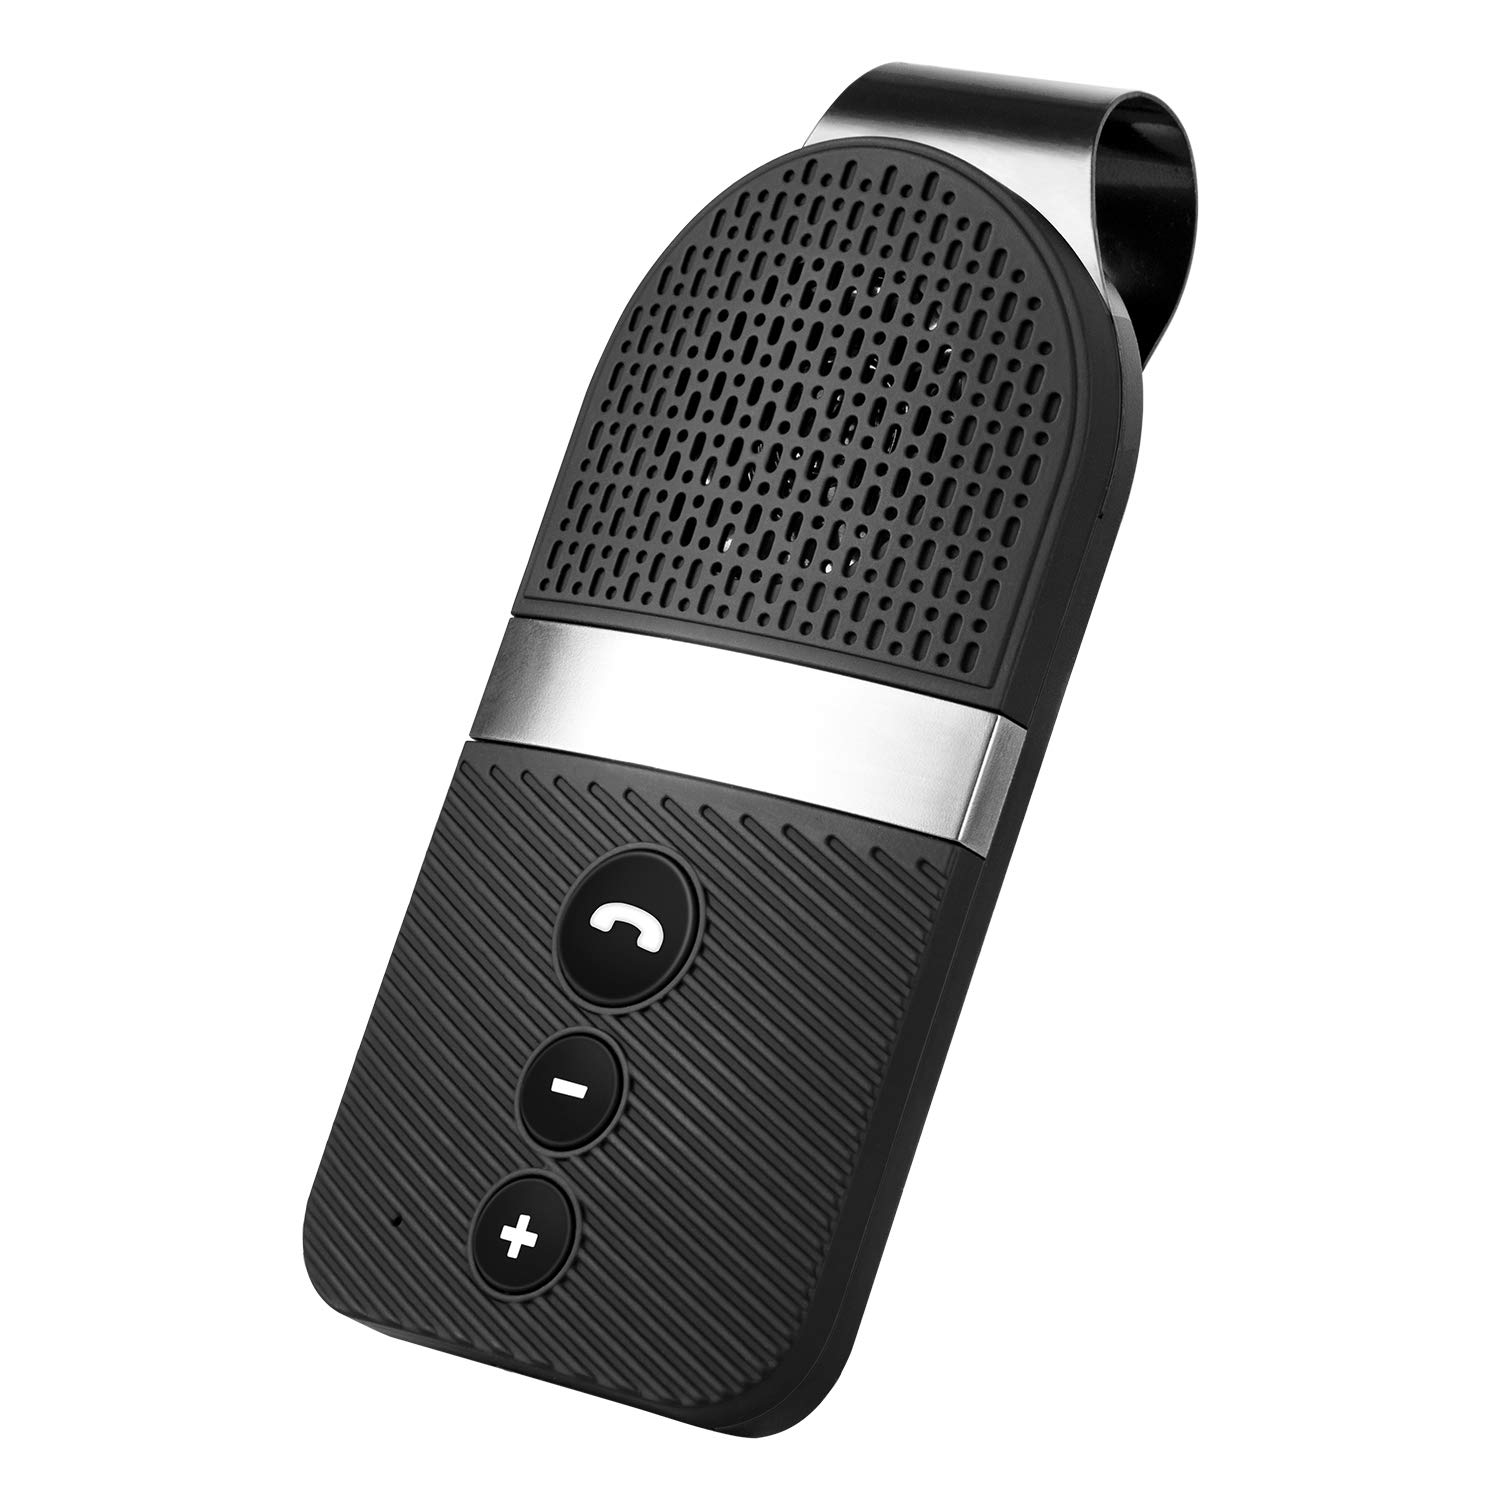 Slopehill Bluetooth Car Speaker for Cellphone, Wireless Handsfree Bluetooth Car Speakerphone with Clear Sound for Safely Talking, Driving and Music Streaming, Rechargeable, Visor Clip, Dual 2W Speaker by Slopehill